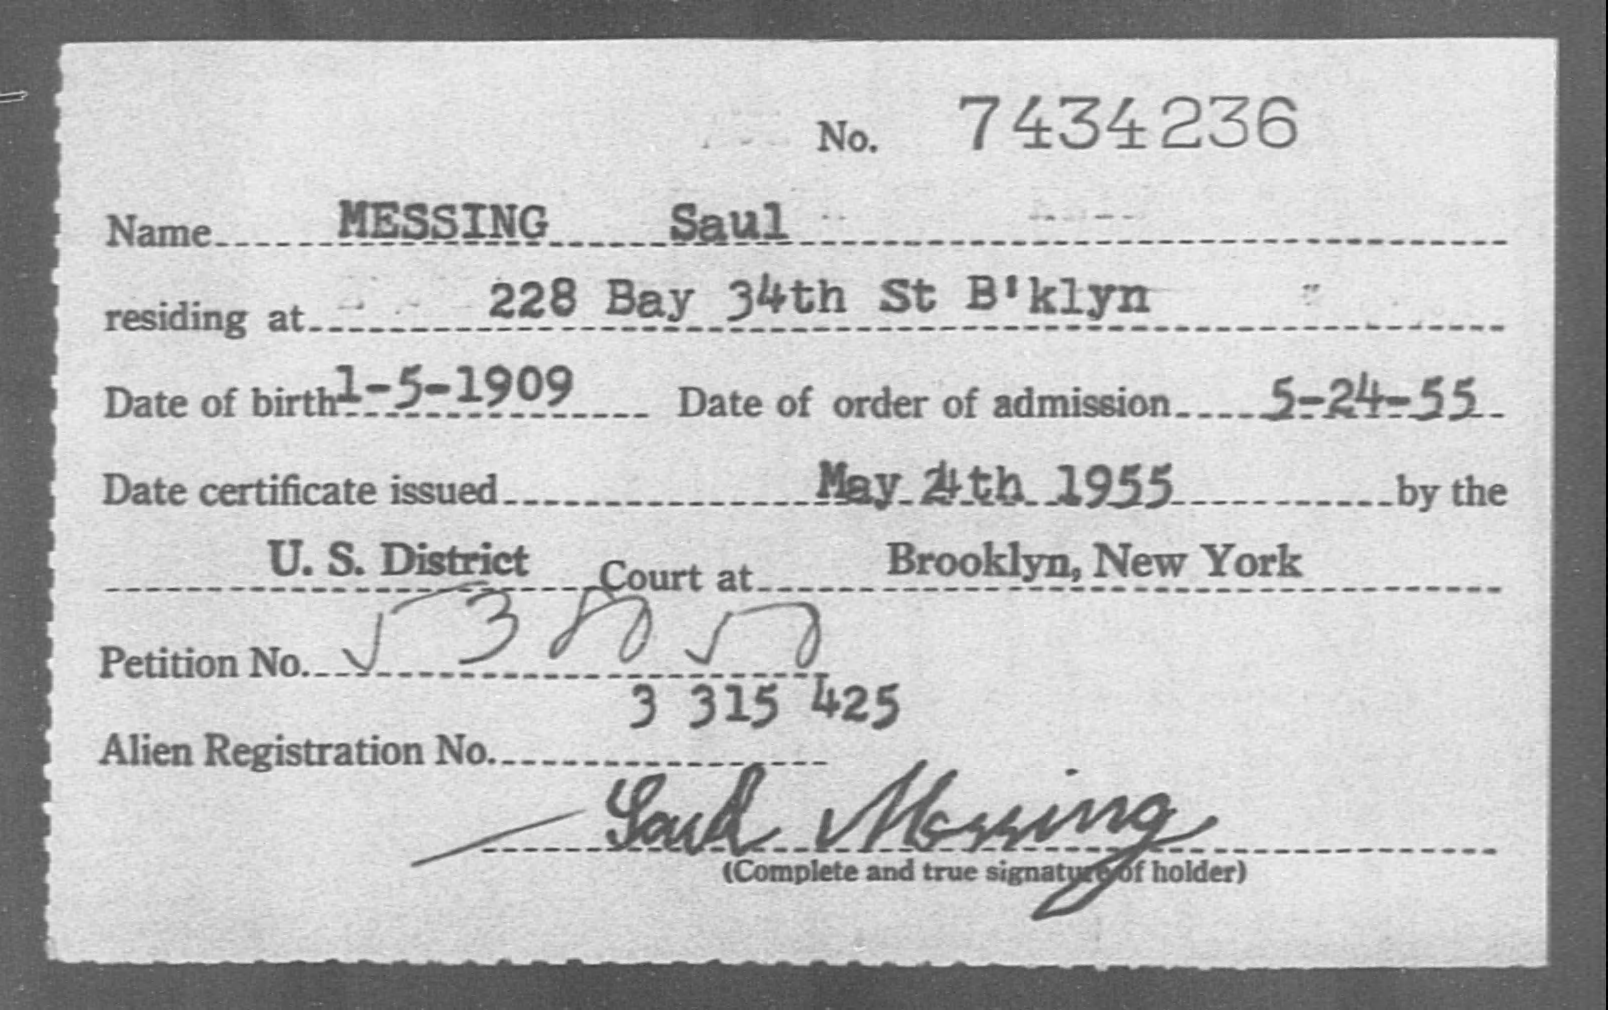 MESSING Saul - Born: 1909, Naturalized: 1955